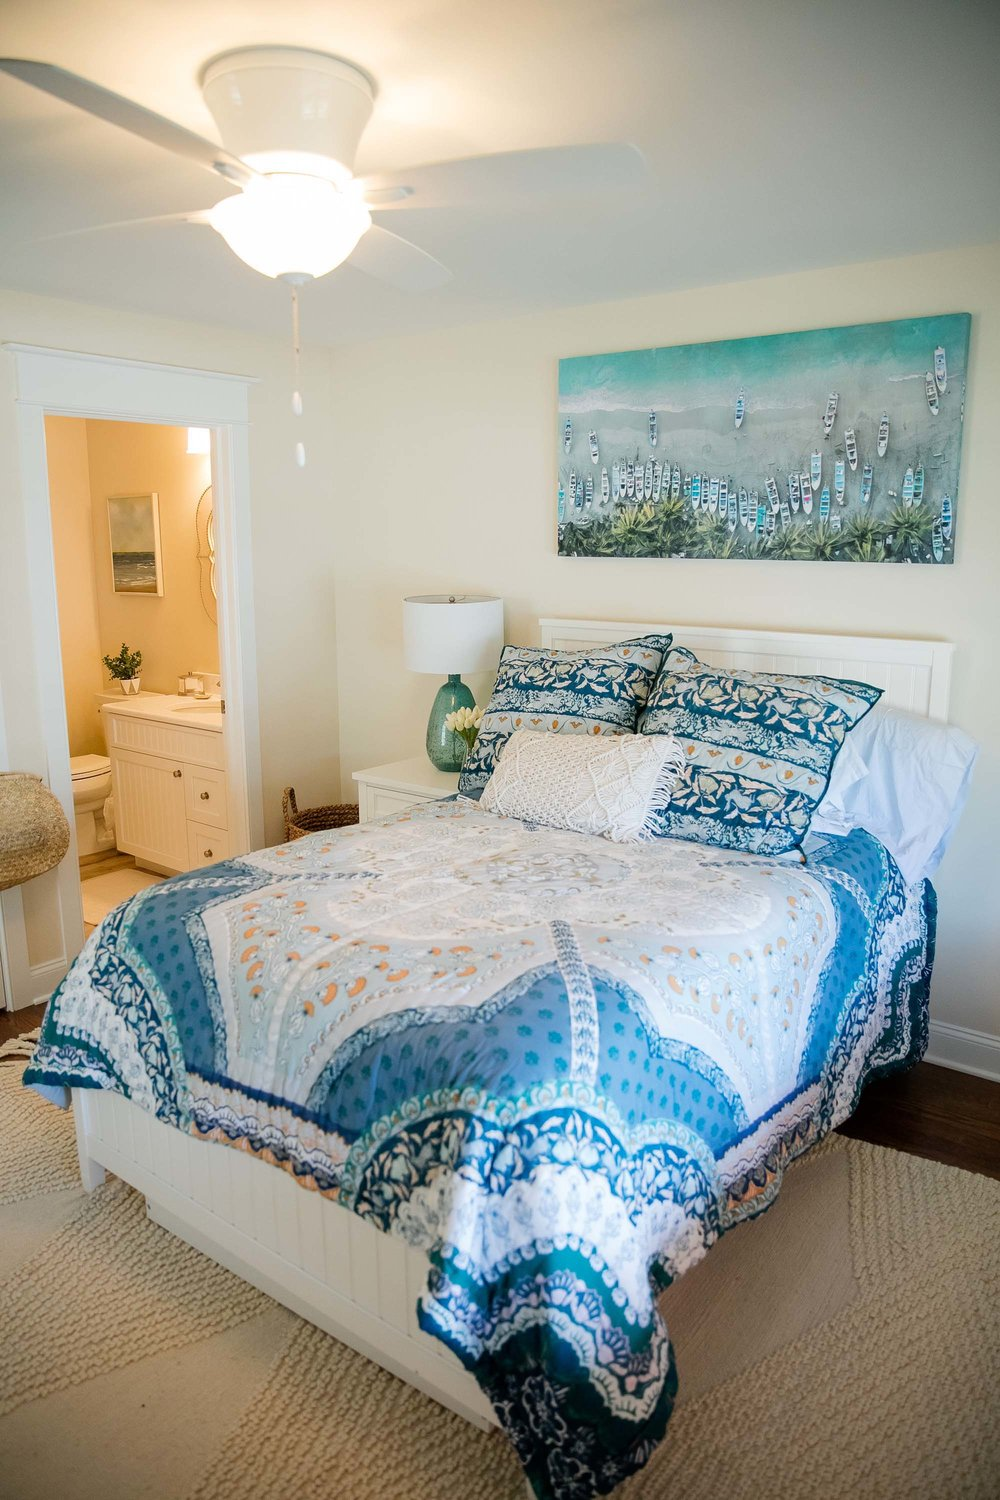 Double bed with bright blue and white bed covering